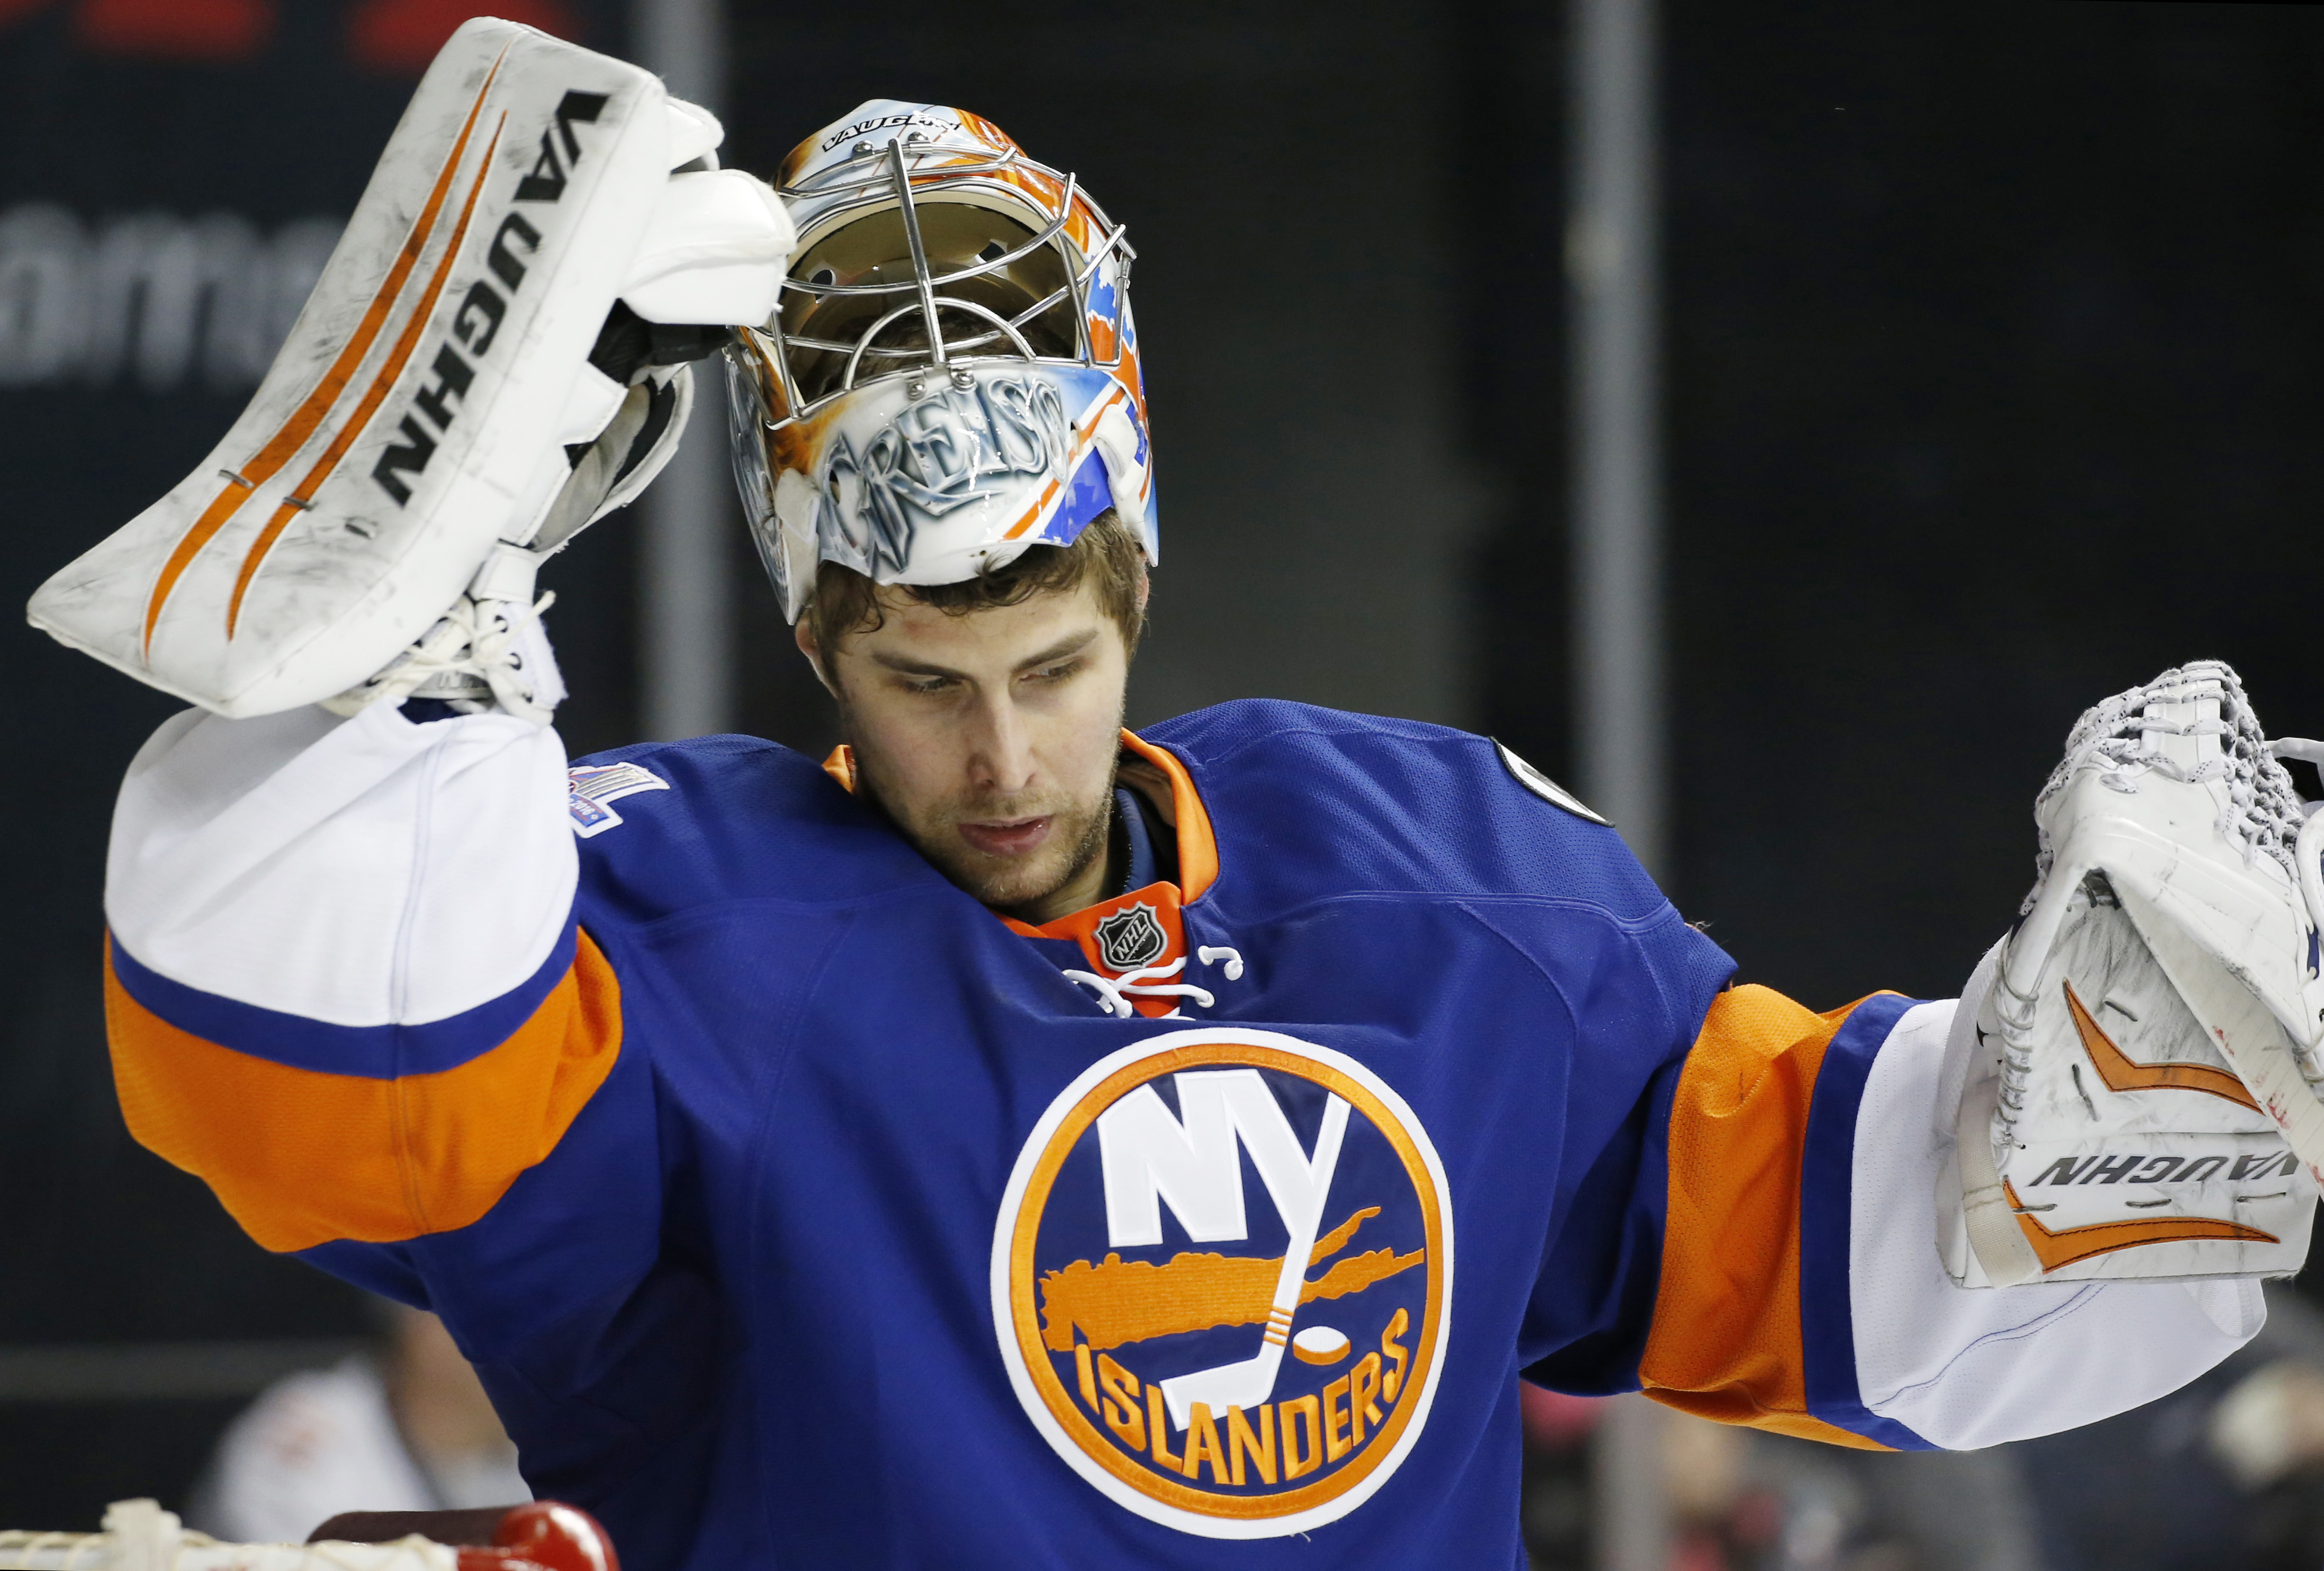 New York Islanders goalie Thomas Greiss (1) reacts after giving up a third goal to the Philadelphia Flyers in the third period of an NHL hockey game in New York, Monday, March 21, 2016. Greiss was in the net for all three periods as the Flyers defeated th